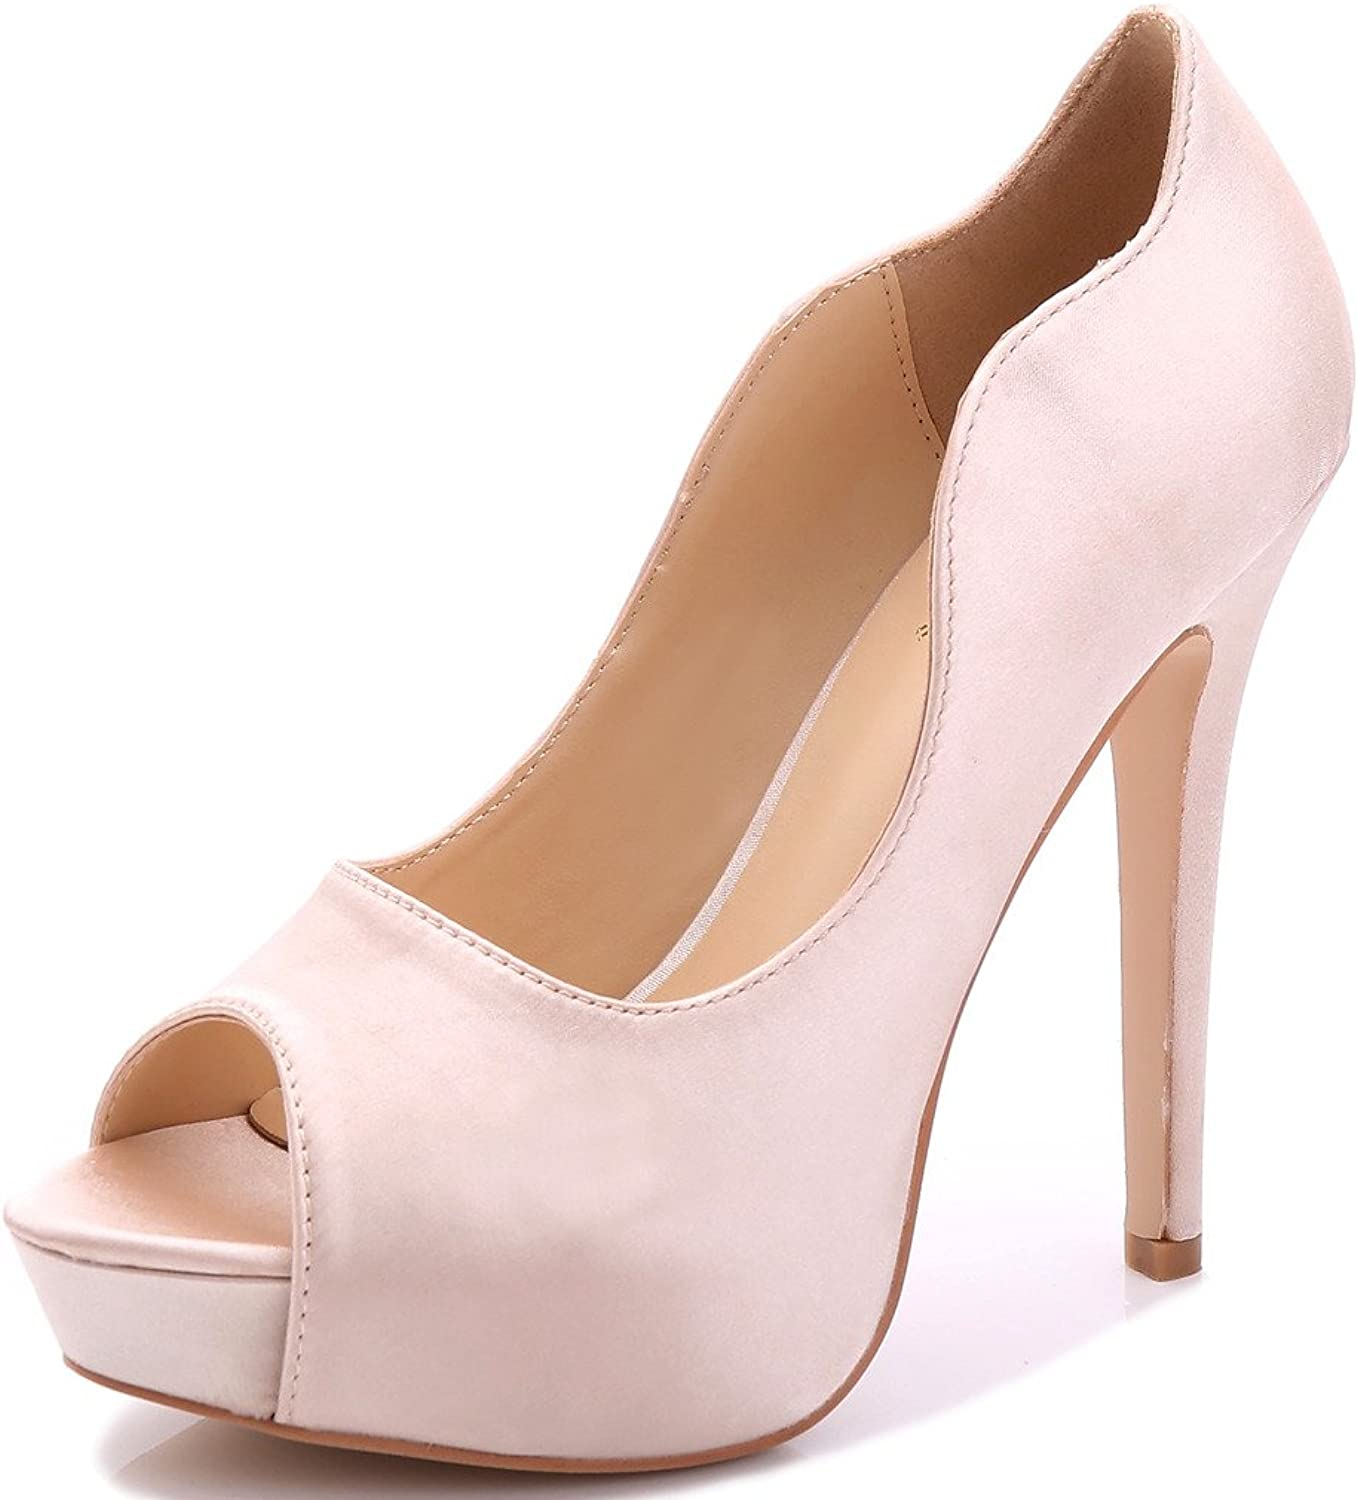 YooPrettyz Women Peep Toe Satin shoes Wedding Stiletto shoes Evening Pumps Bridal High-Heels